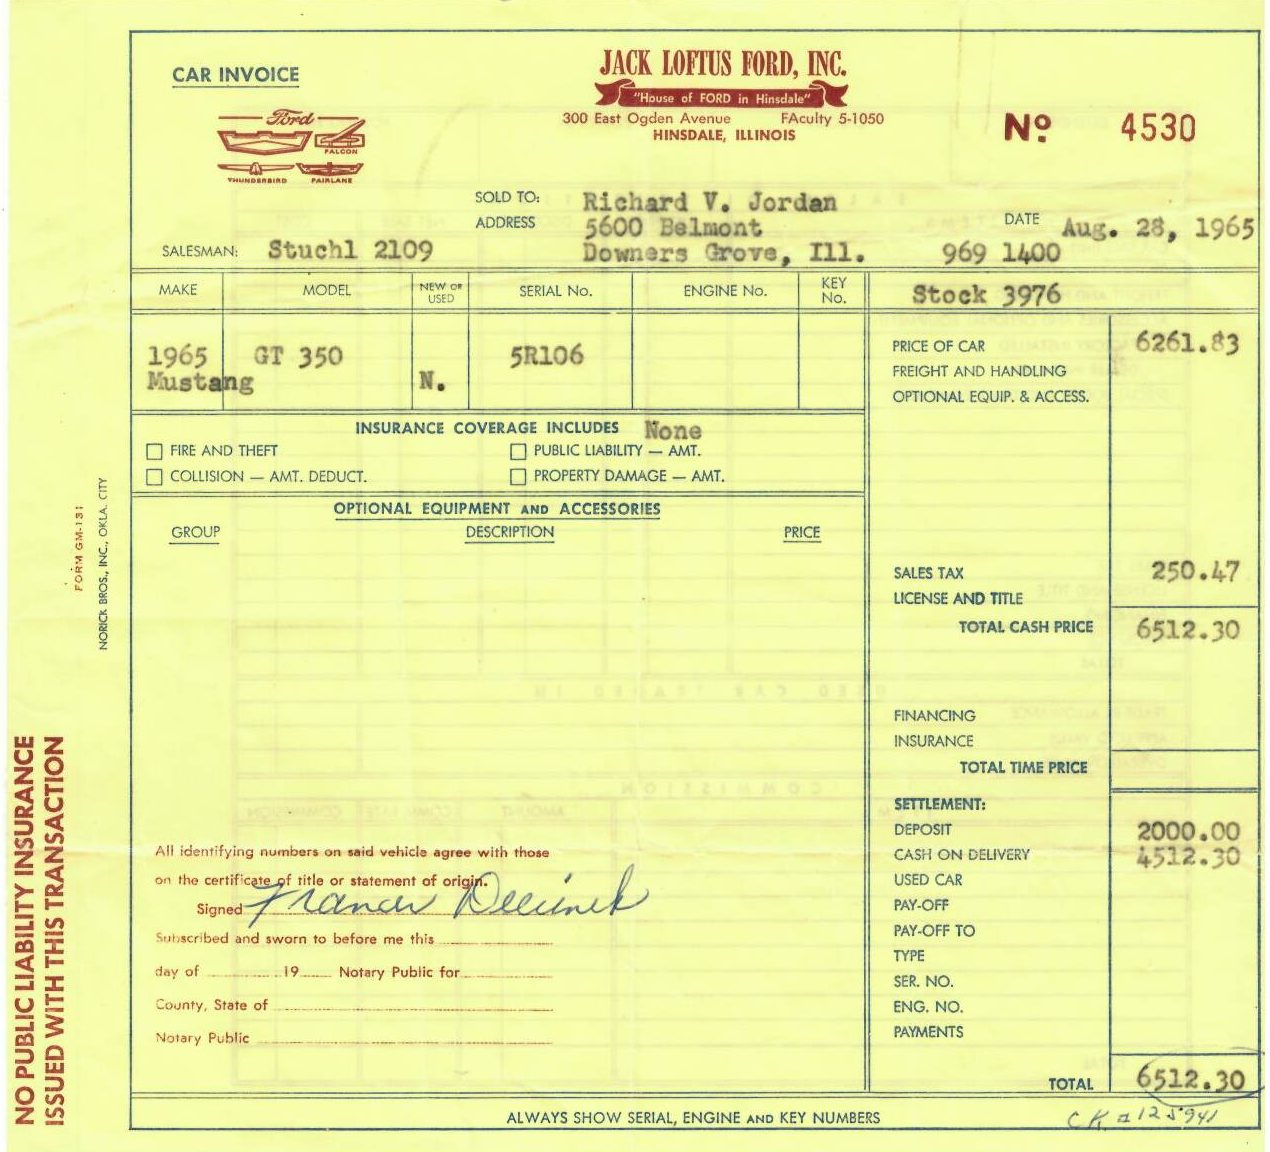 Shelby GT350R Fastback jack lotus ford invoice